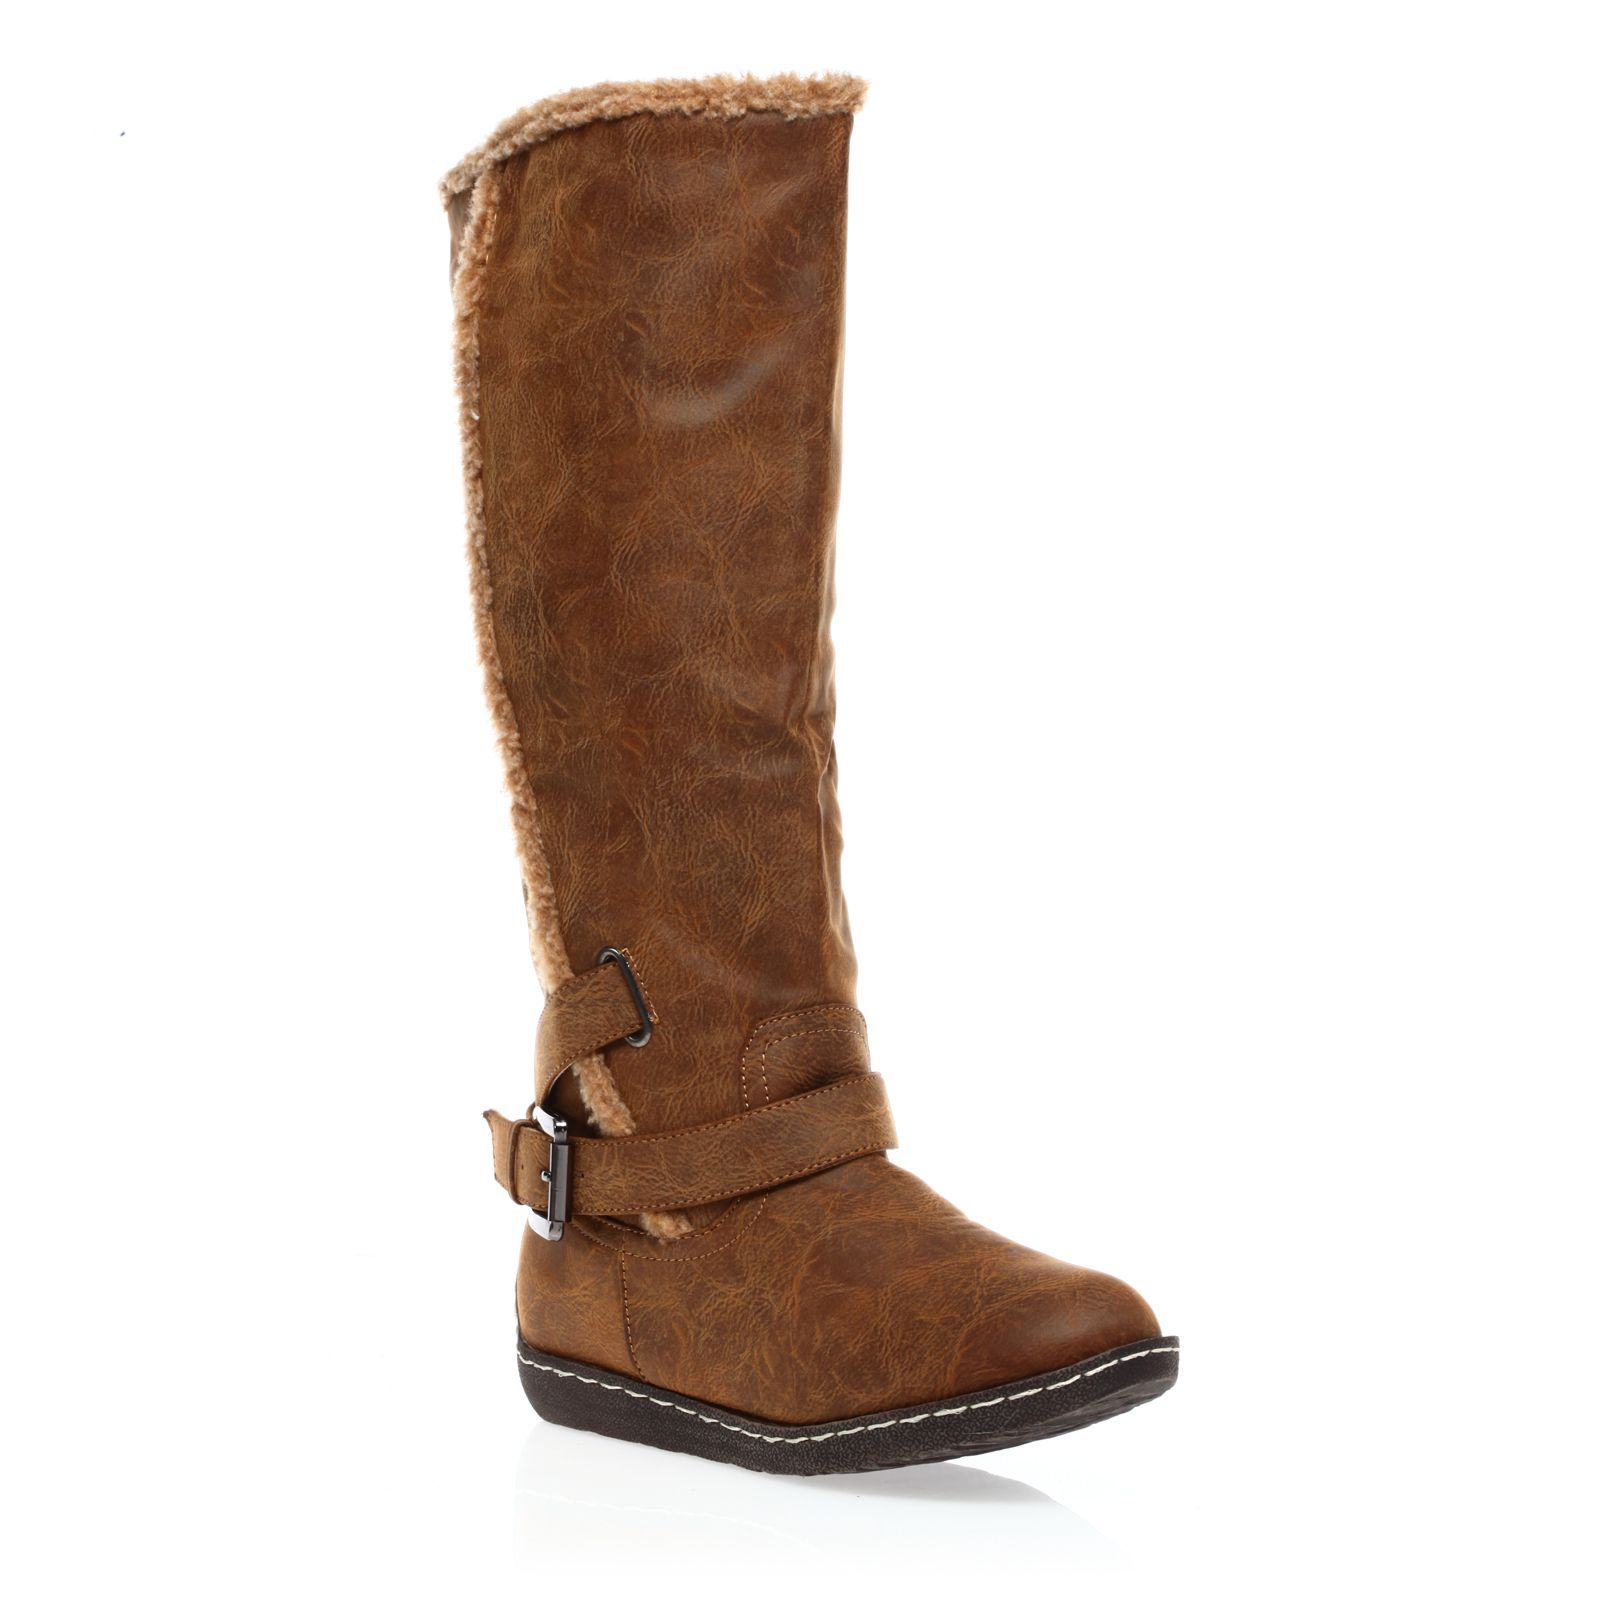 1001 Shoes bottes four�es camel